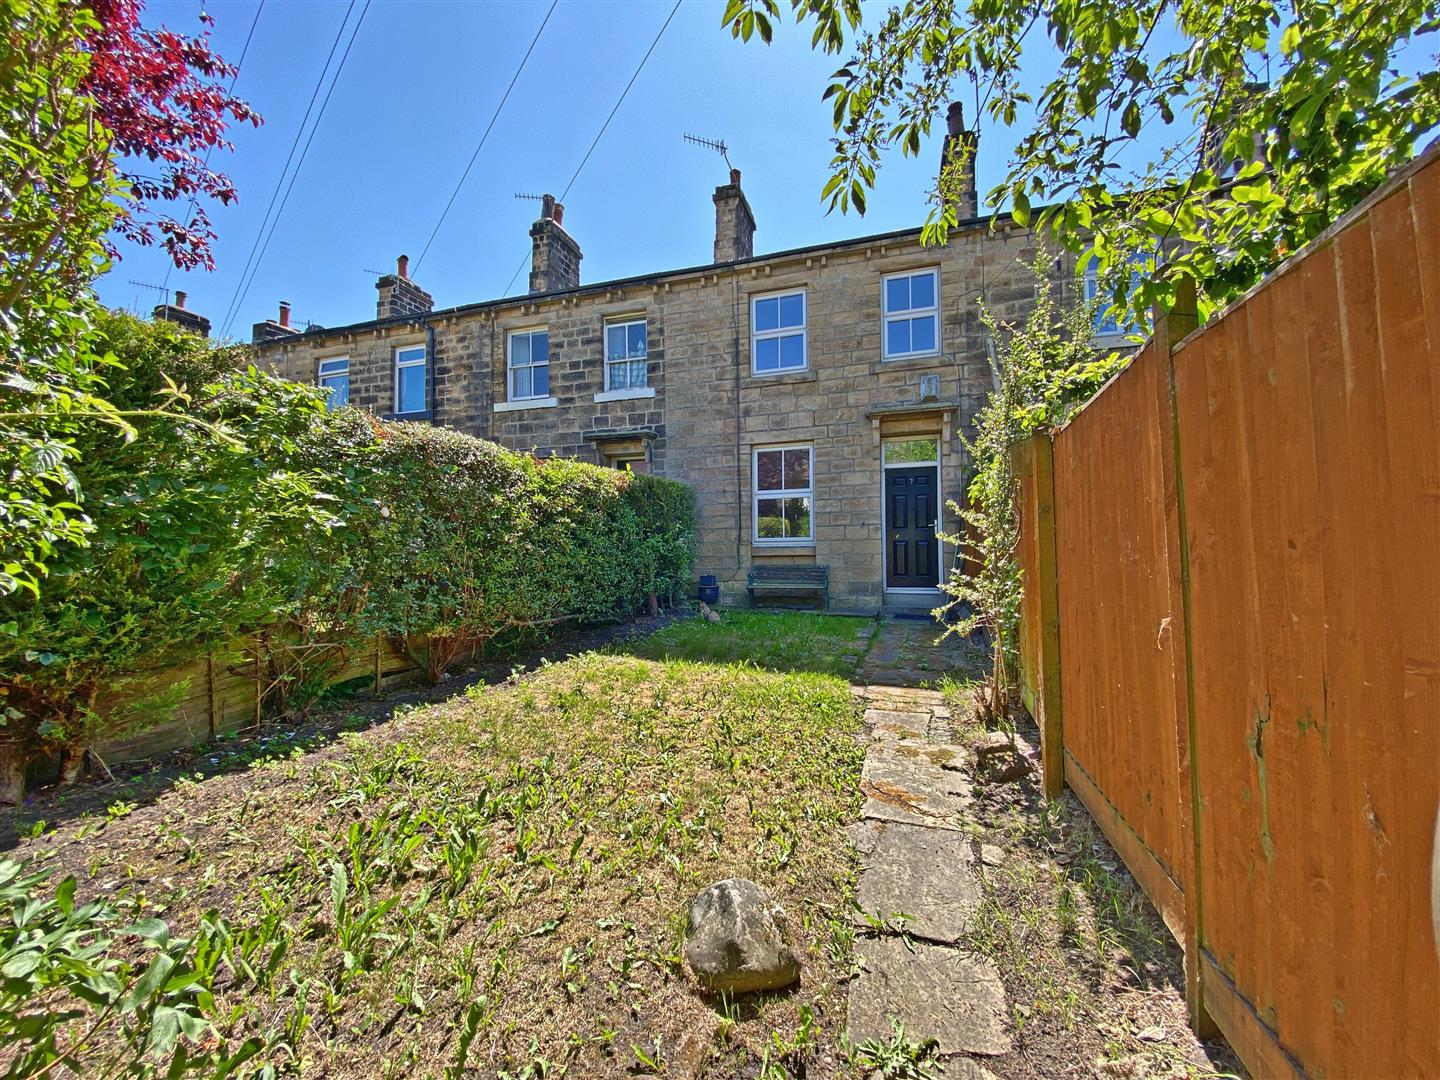 North View, Burley In Wharfedale, LS29 7JU